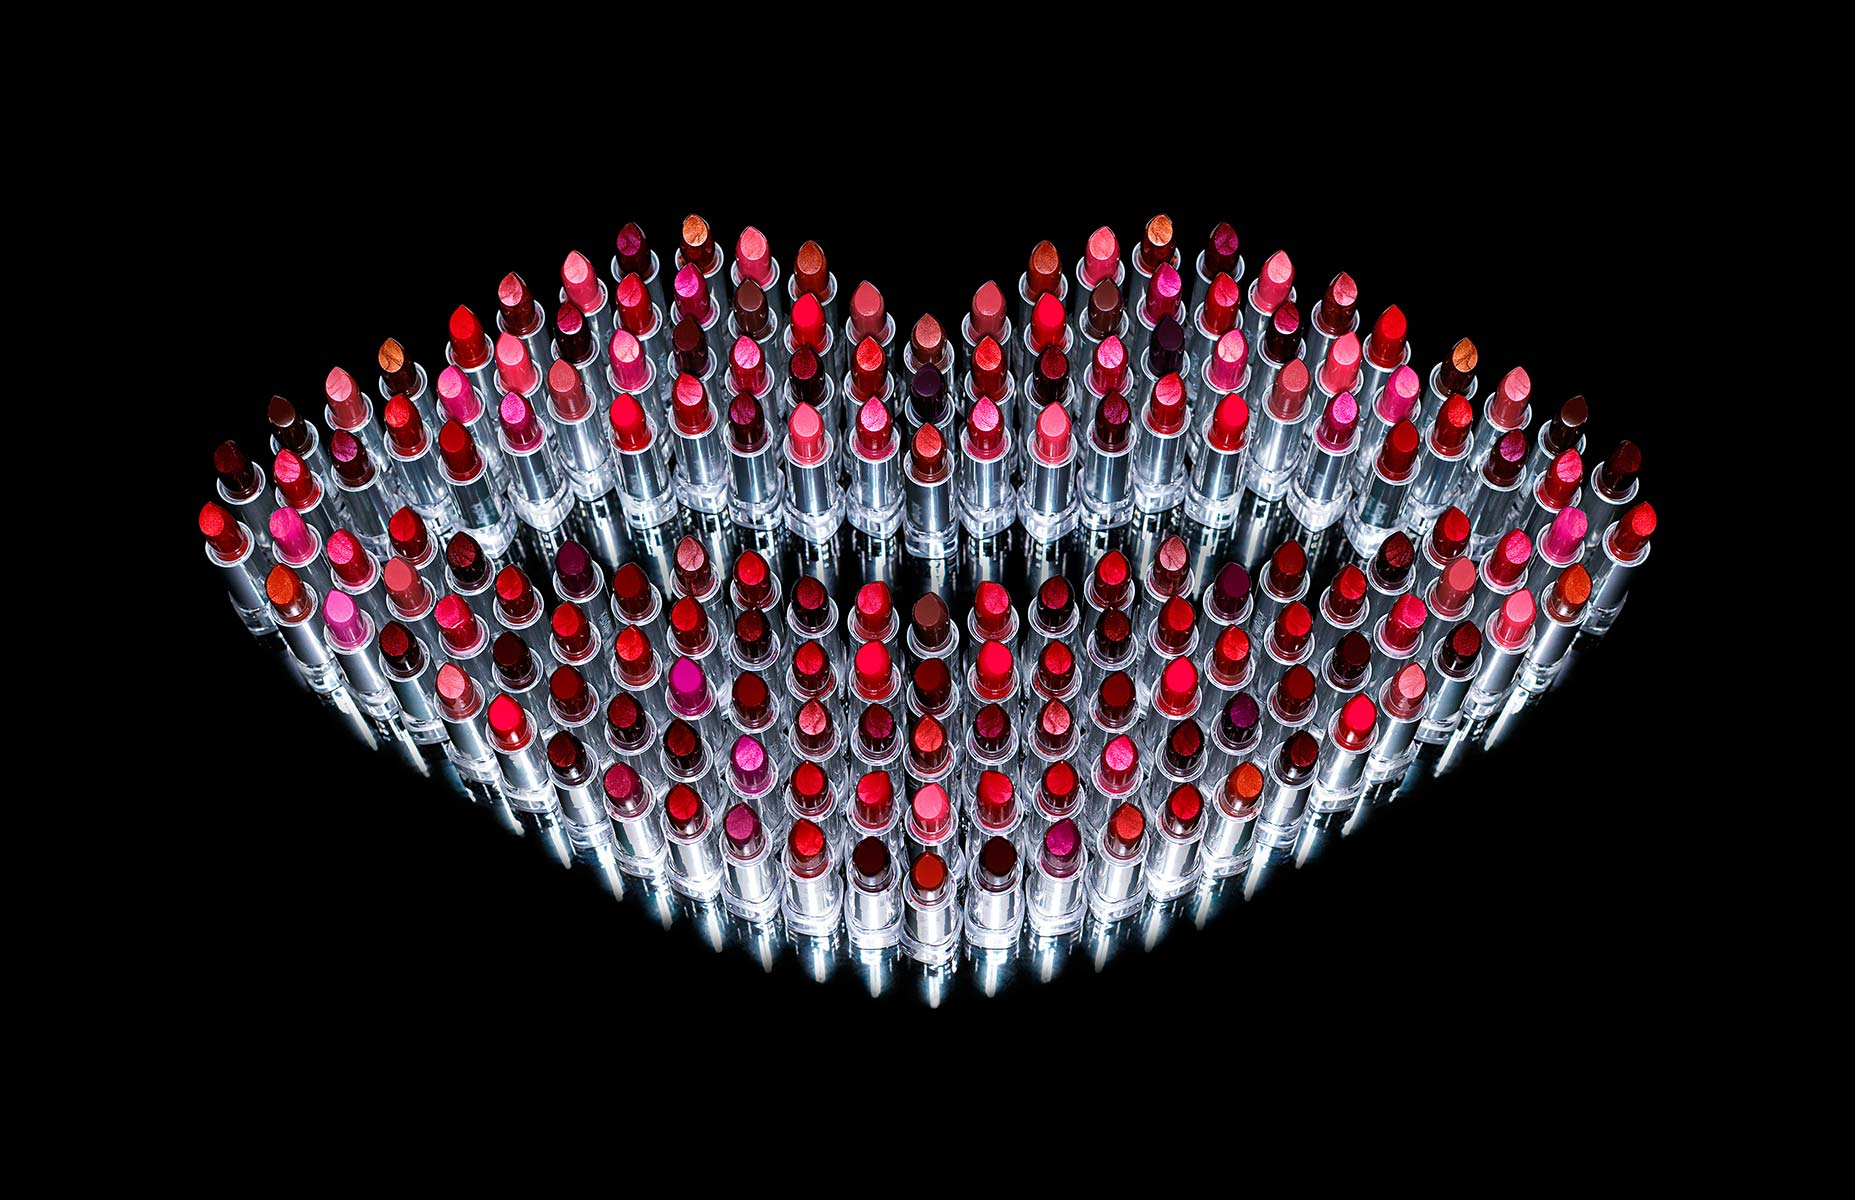 product photographer cosmetics photography lipstick in shape of lip cosmetic photography